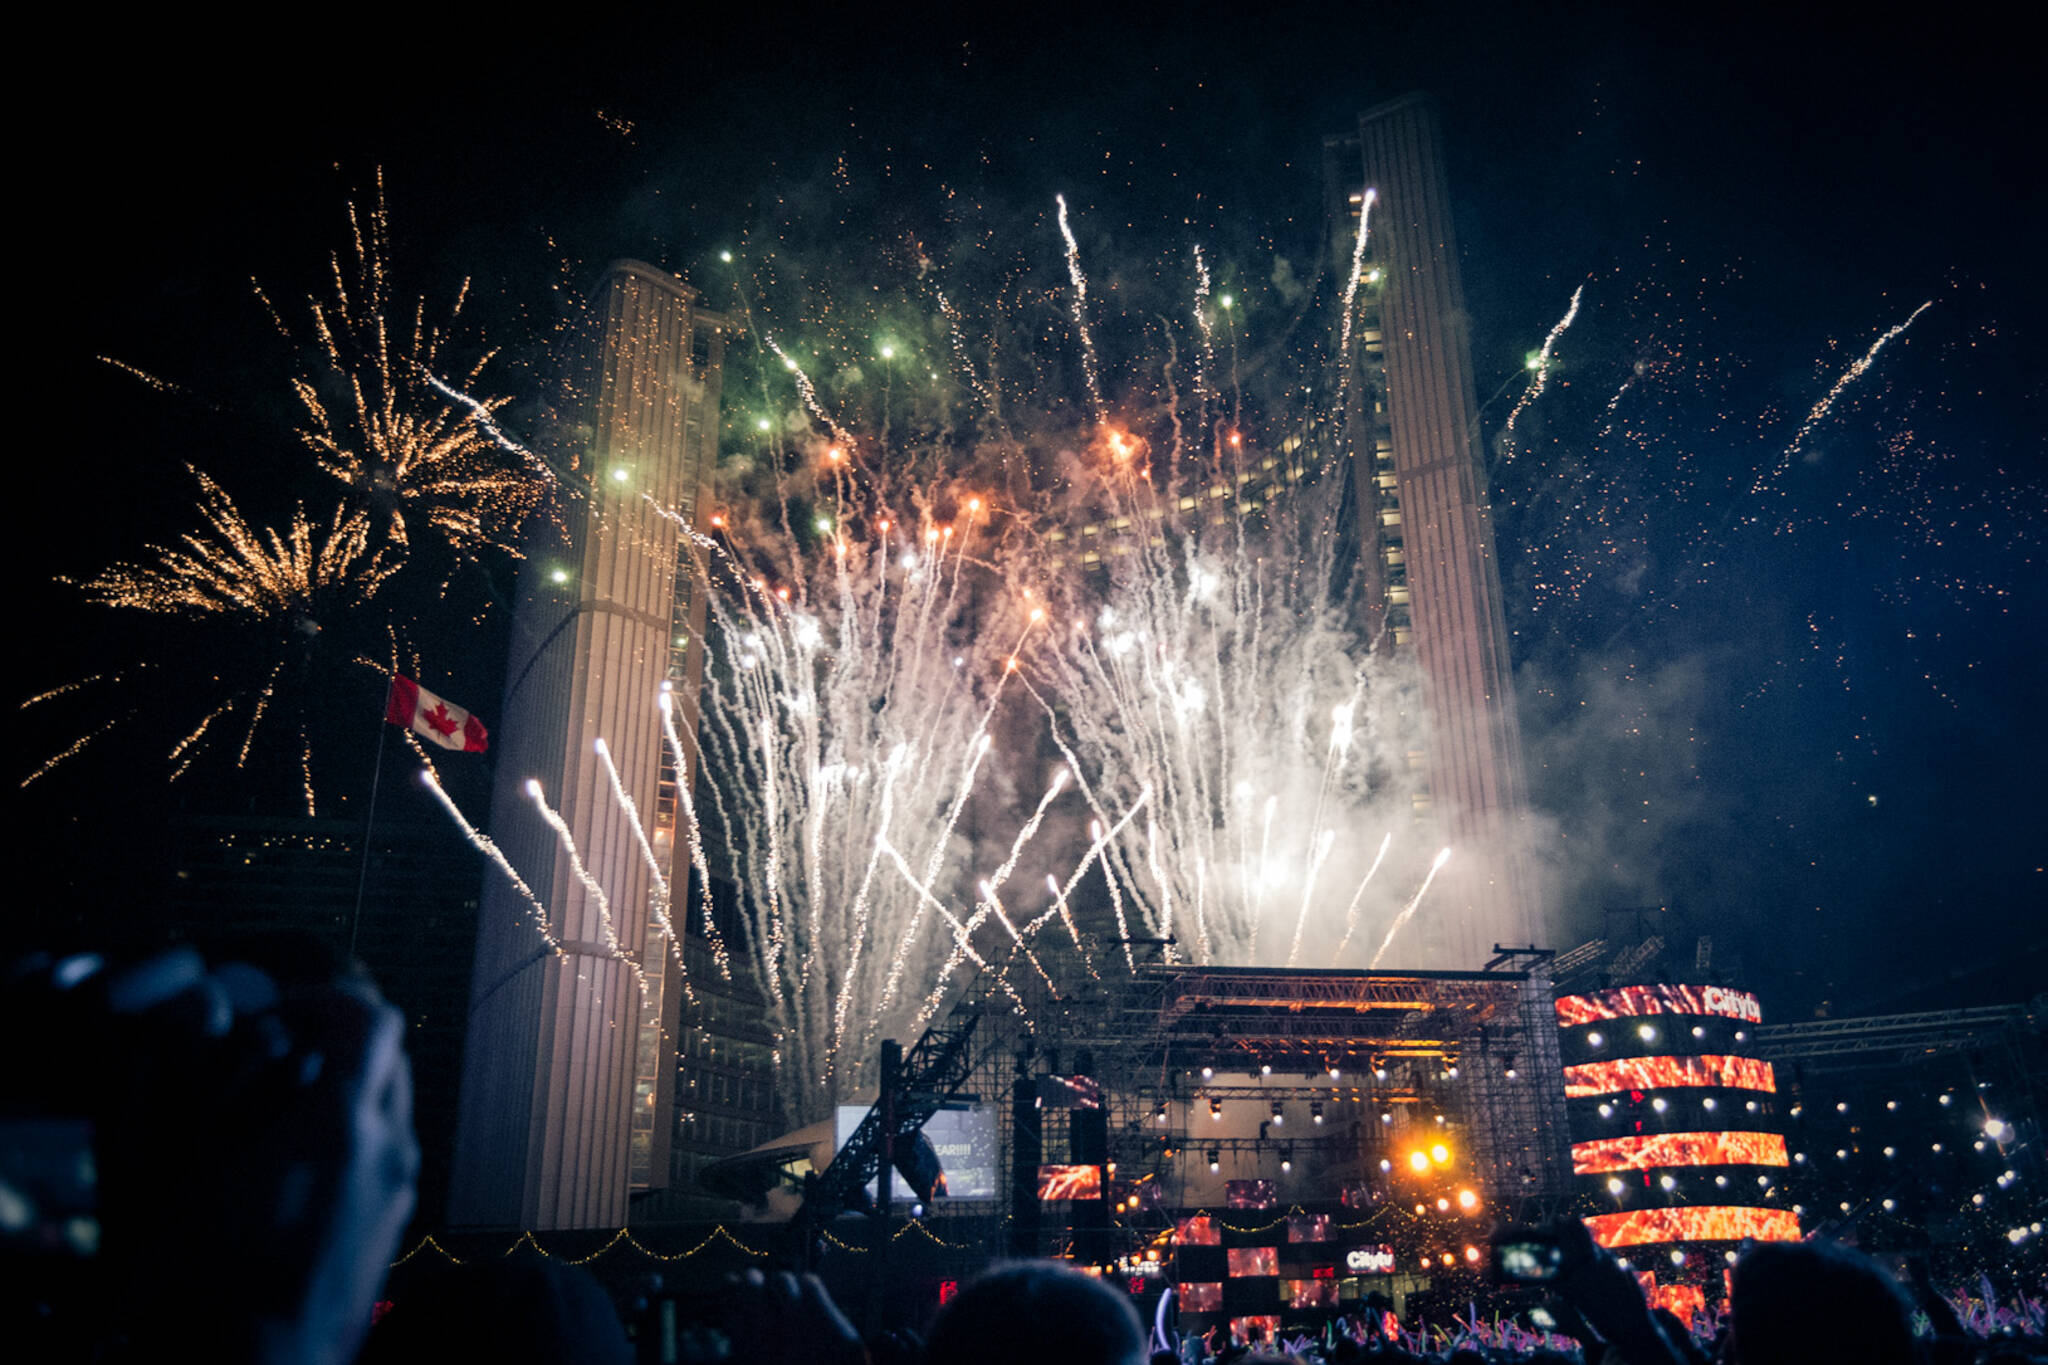 10 free events on New Year's Eve in Toronto